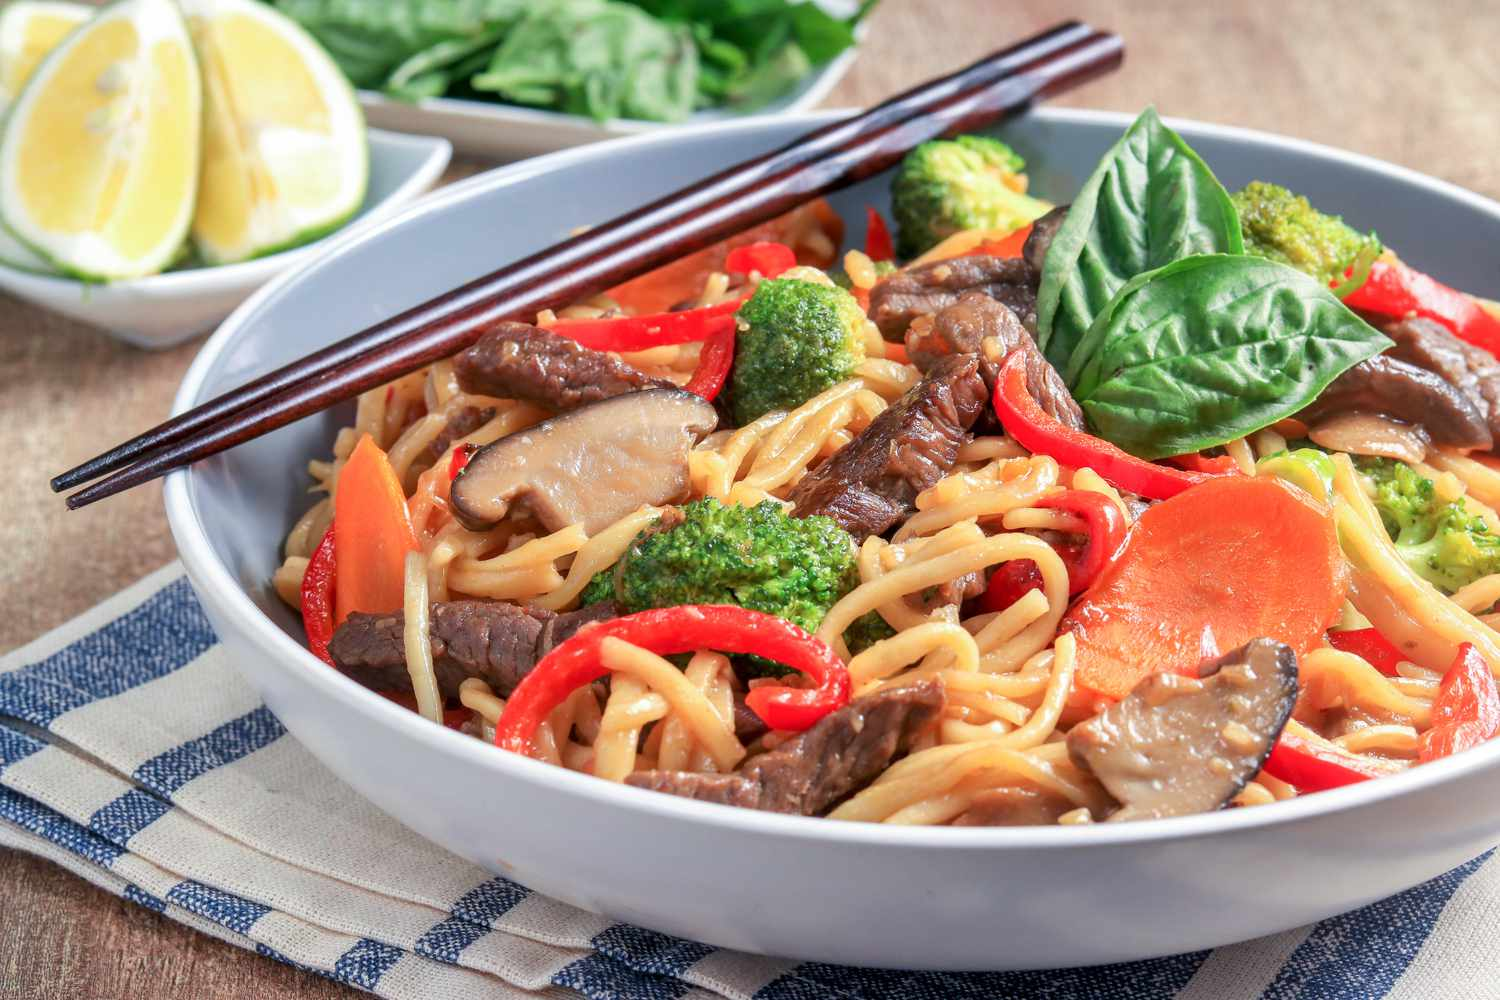 Thai stir fried noodles with beef